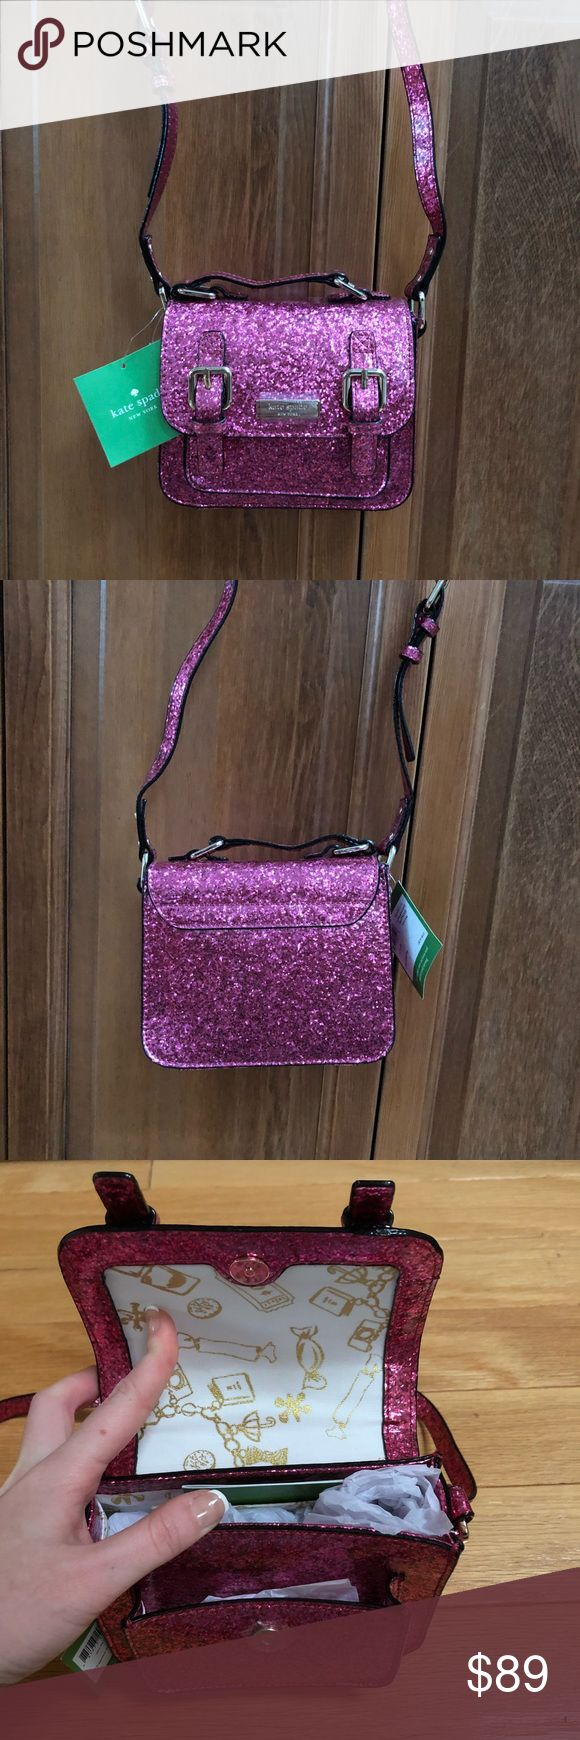 ❗️SALE❗️$148 Kate Spade Crossbody New with tags $148 Kate Spade scout bag in skirt the rules fushia glitter//brand new, perfect condition, never worn before Kate Spade Bags Crossbody Bags